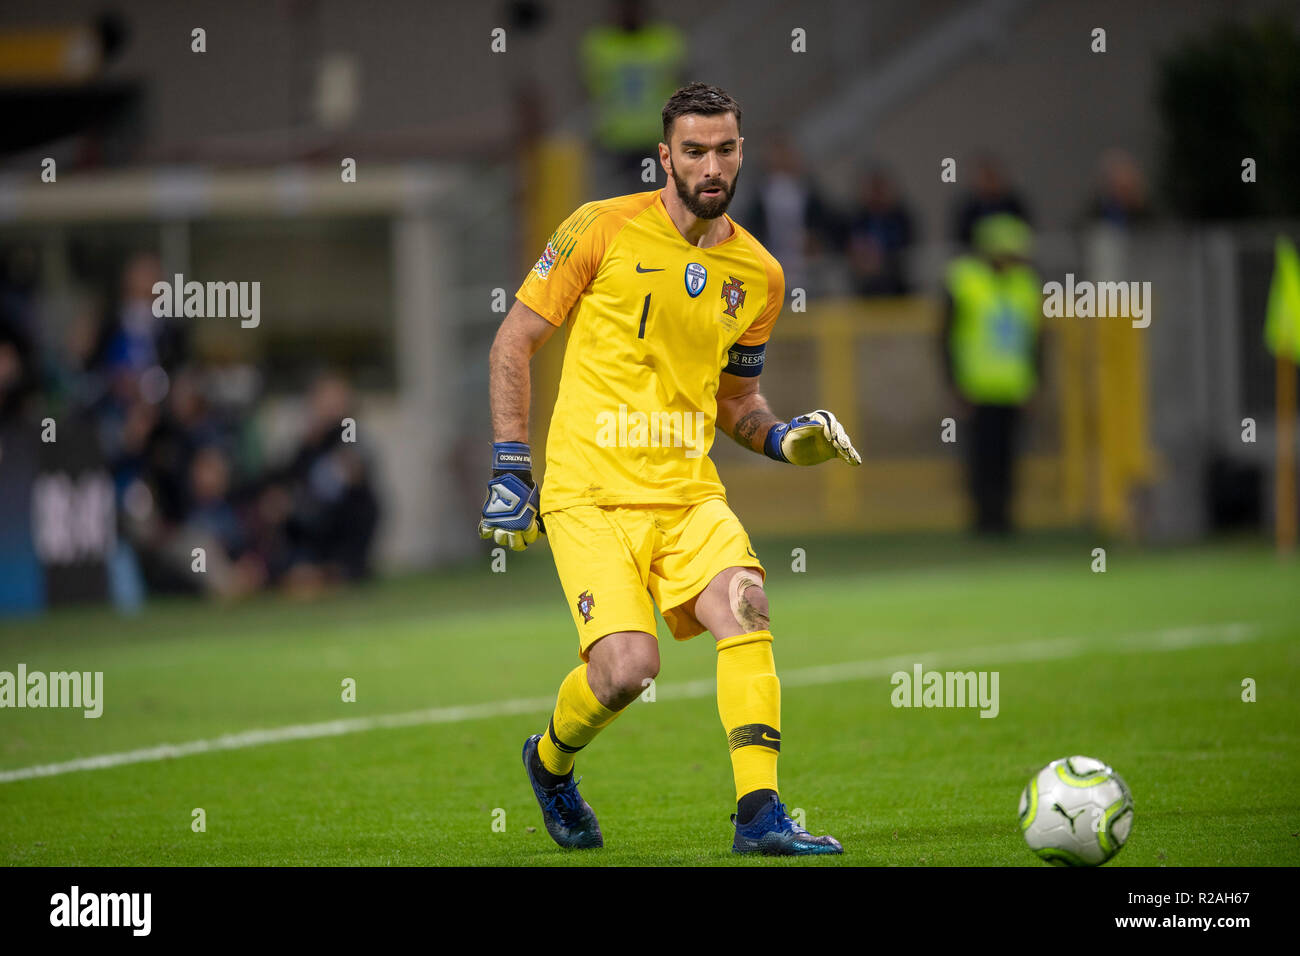 Milan, Italy. 17th Nov, 2018. Rui dos Santos Patricio (Portugal) during the UEFA Nations League 2018-2019 match between Italy 0-0 Portugal at Giuseppe Meazza Stadium on November 17, 2018 in Milano, Italy. Credit: Maurizio Borsari/AFLO/Alamy Live News Stock Photo